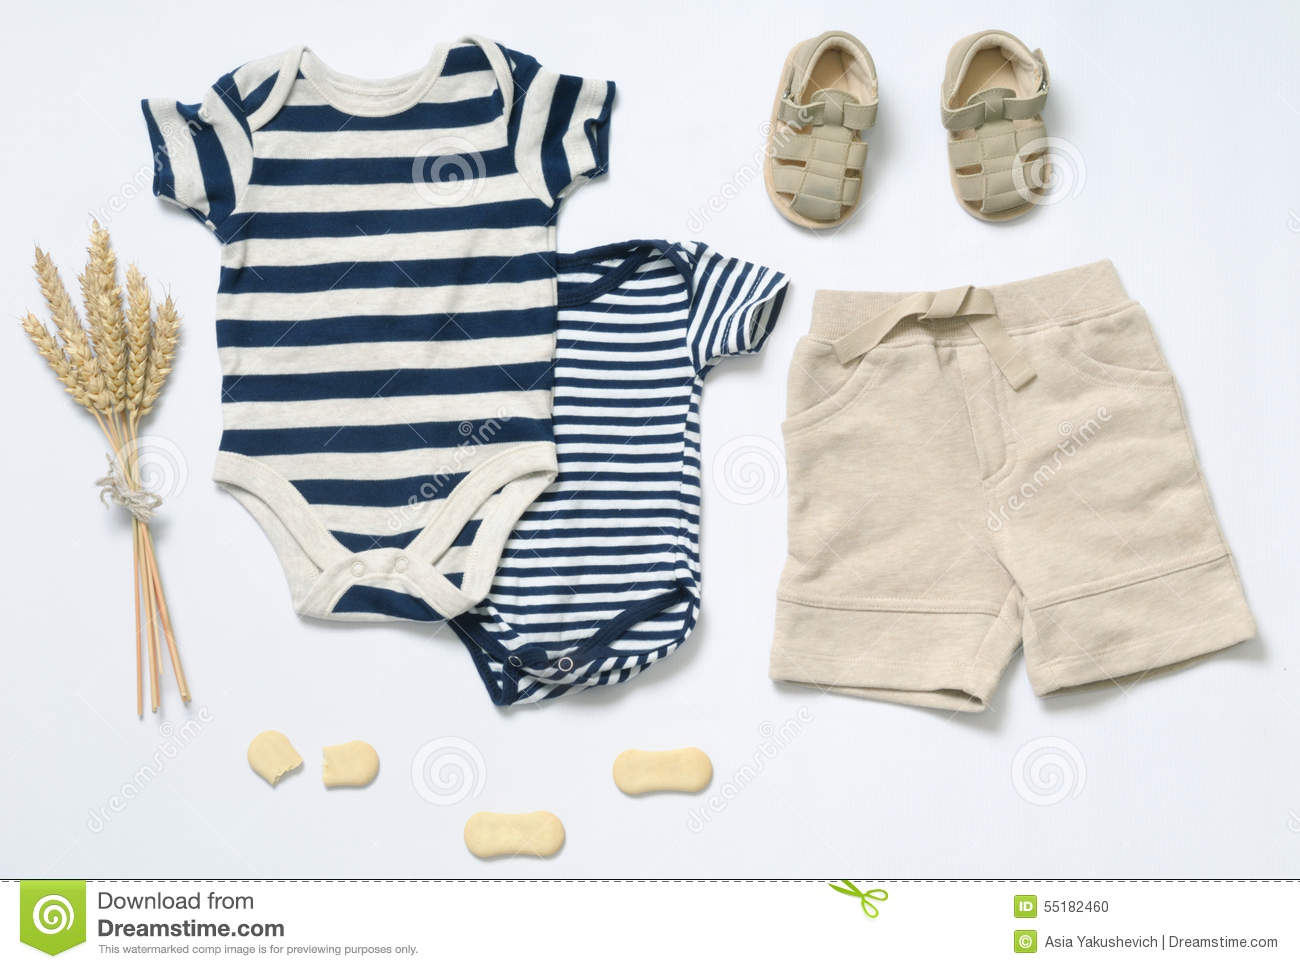 Top View Fashion Trendy Look Of Baby Boy Clothes Stock Photo - Image ... 7a94ede82